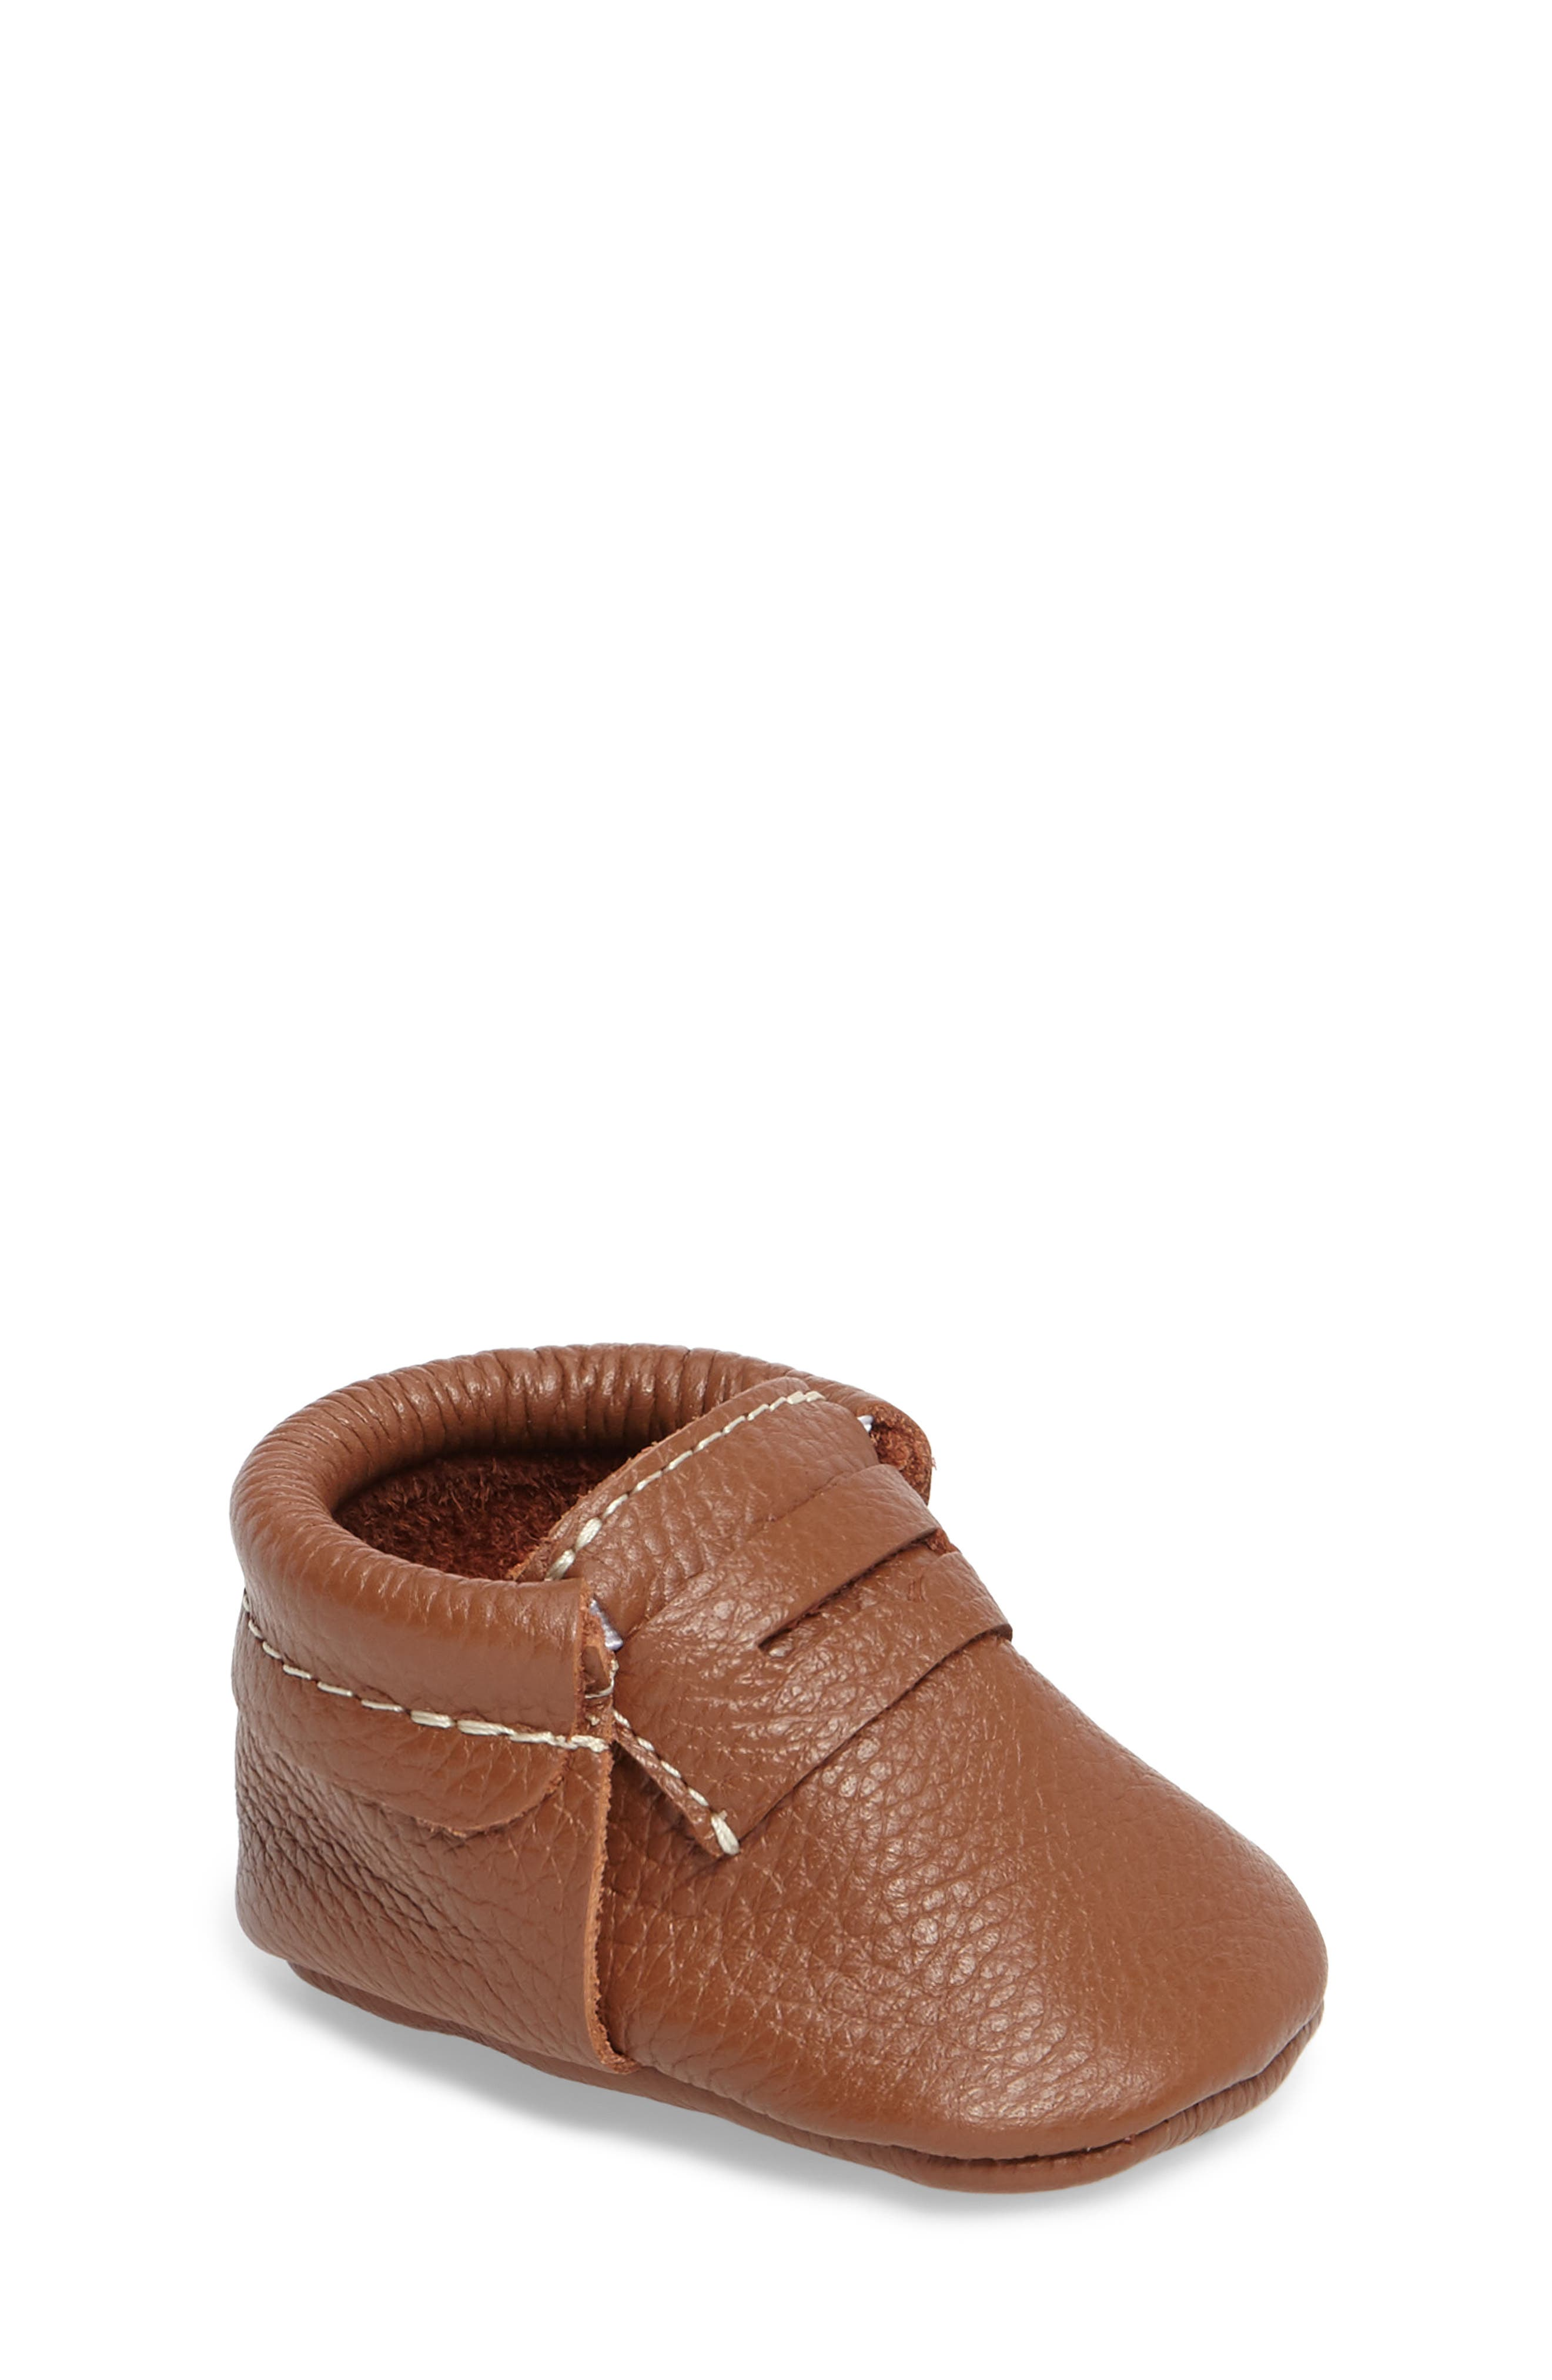 Penny Loafer Crib Shoe,                         Main,                         color, Cognac